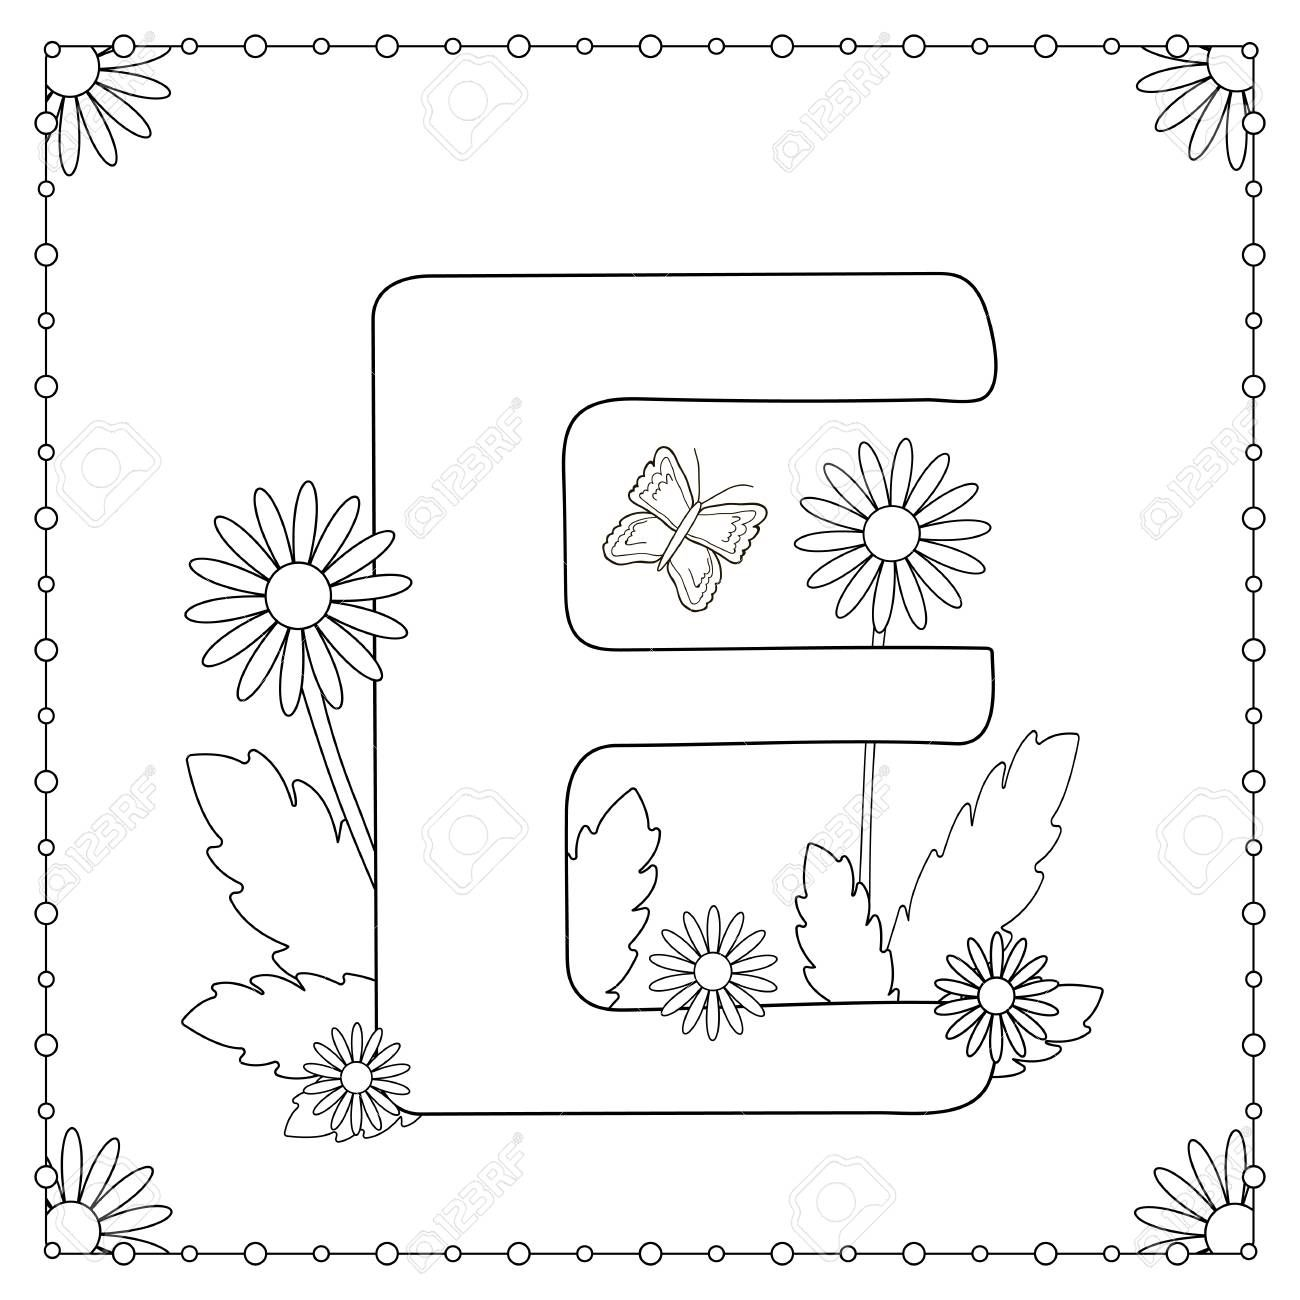 Alphabet Coloring Page Capital Letter E With Flowers Leaves And Butterfly Vector Illustration Illustration Ad Capital Letter Page Alphabet Colo